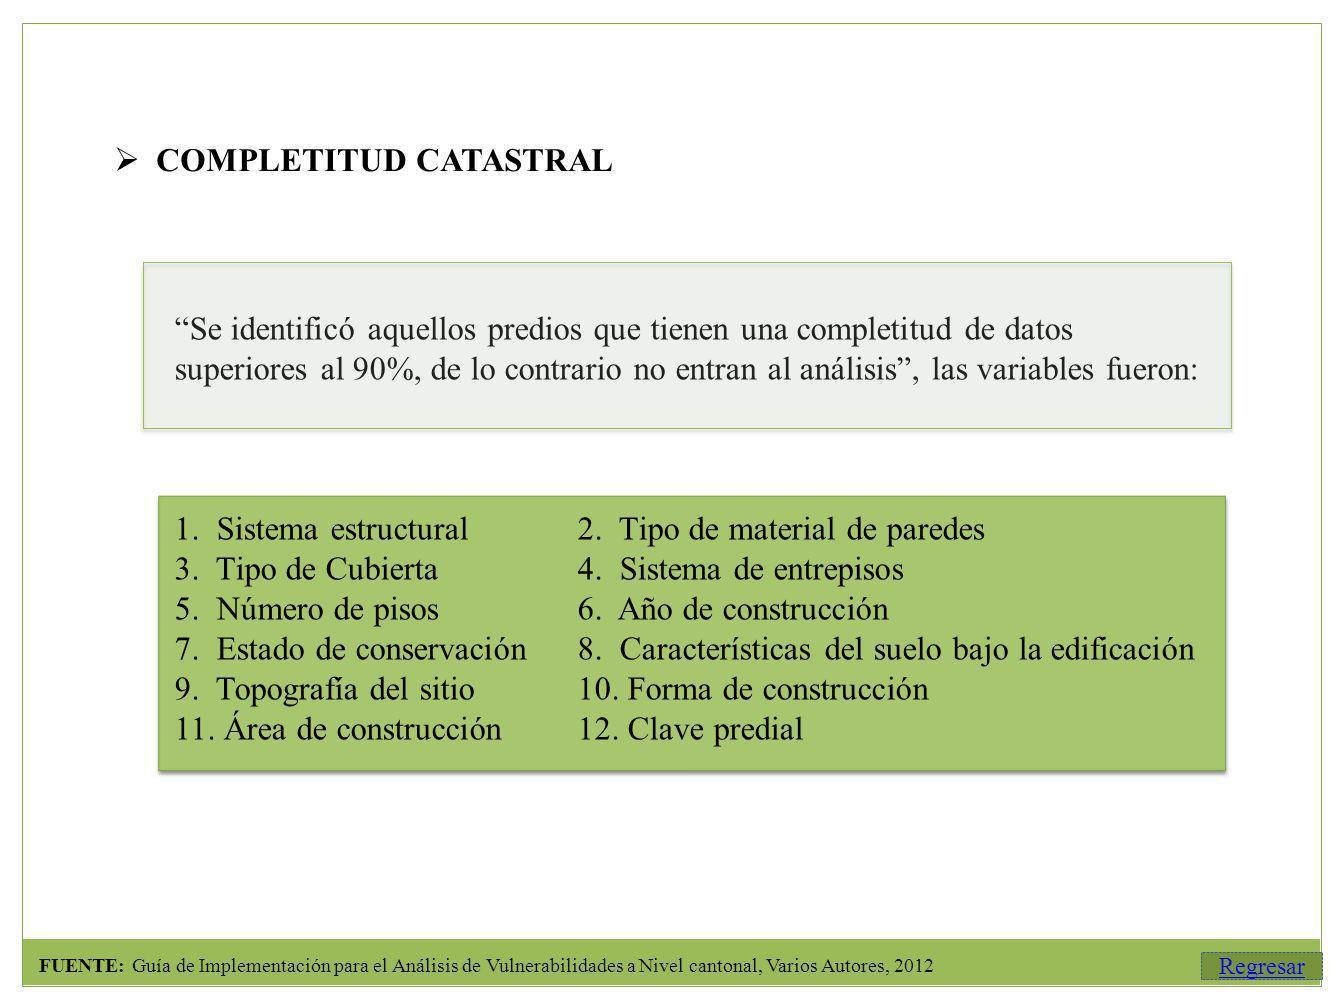 COMPLETITUD CATASTRAL